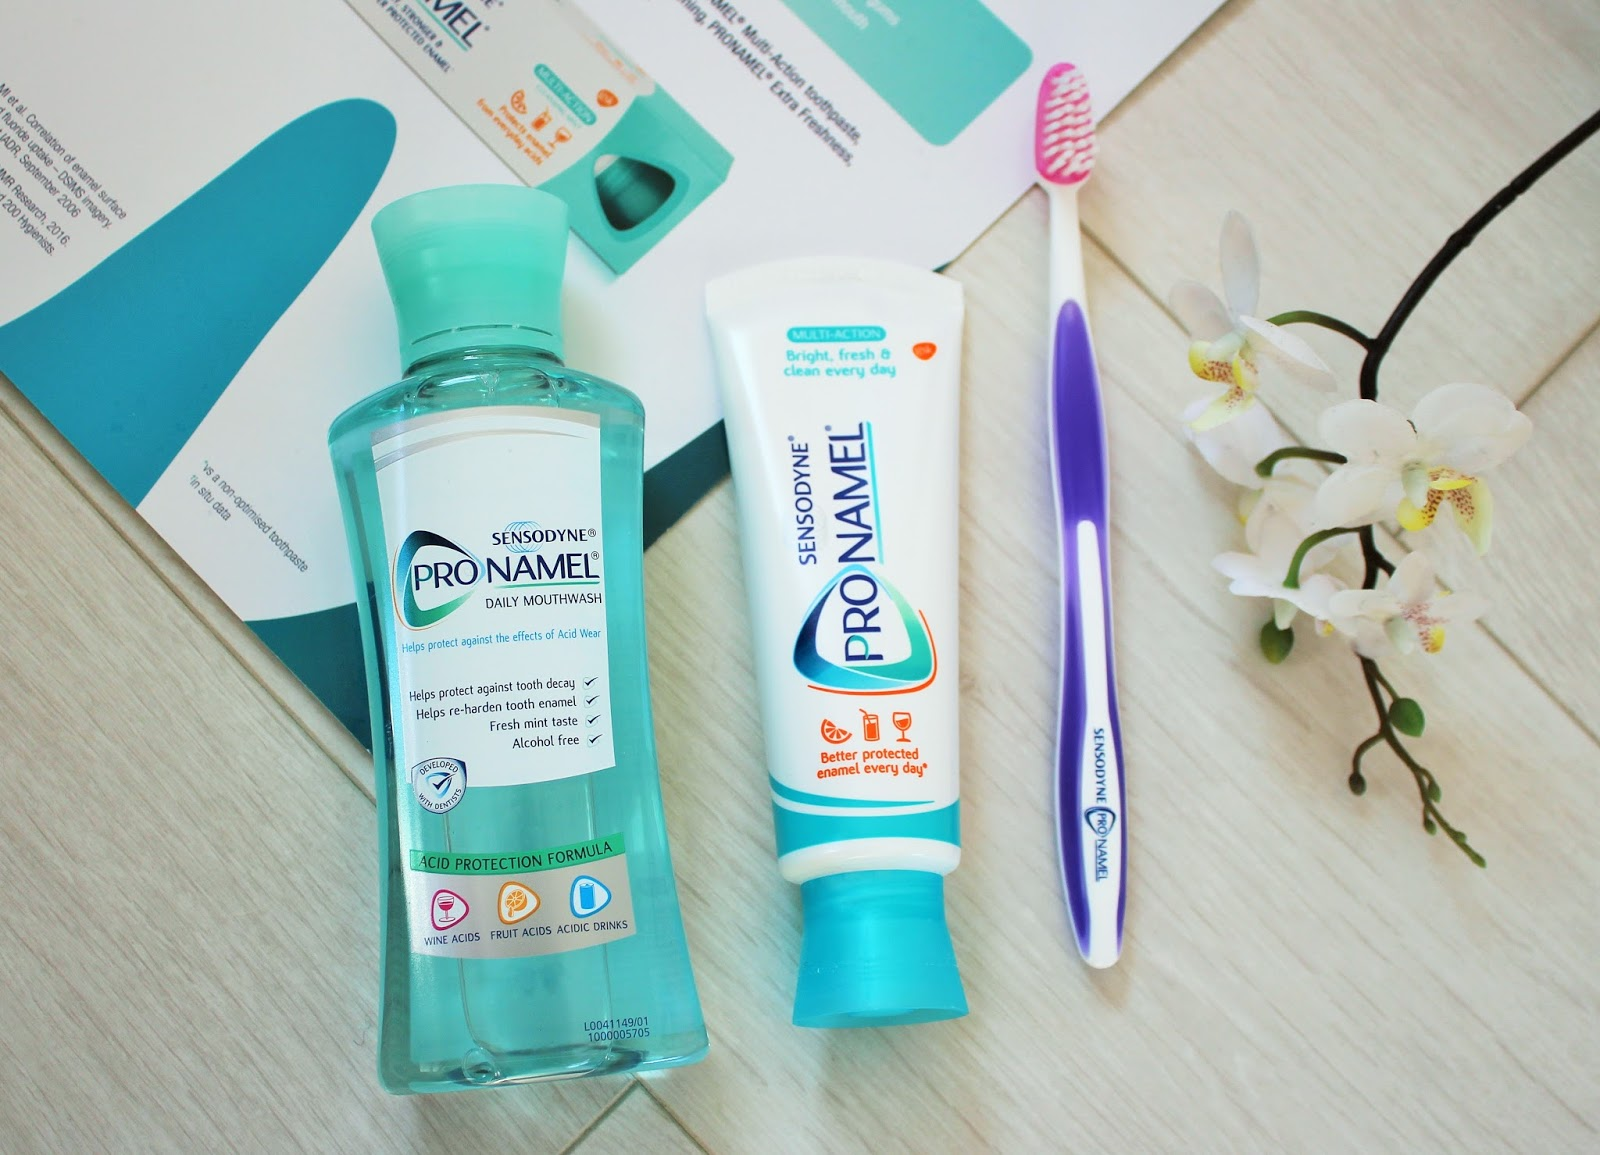 Protect your smile with Sensodyne Pronamel - 2